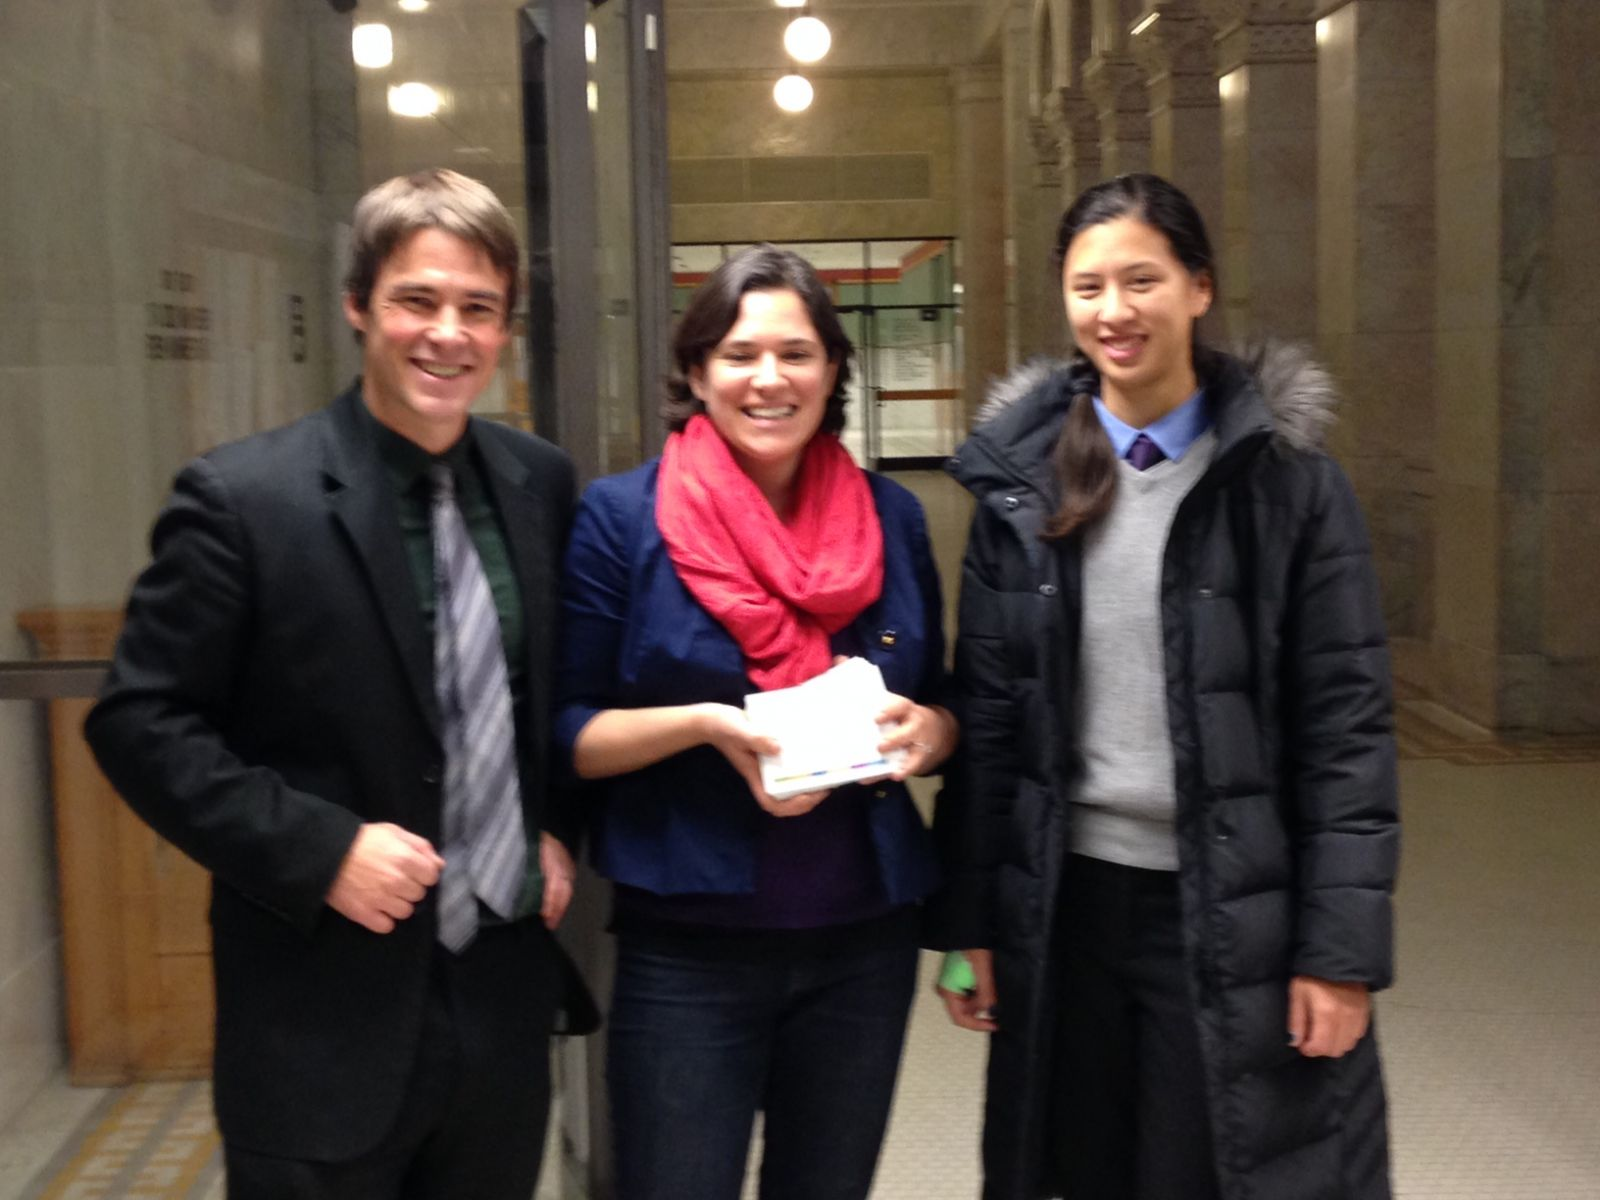 12-2-14_Postcard_Delivery_Event-_Ethan_and_Low_with_CM_Lisa_Bender.JPG